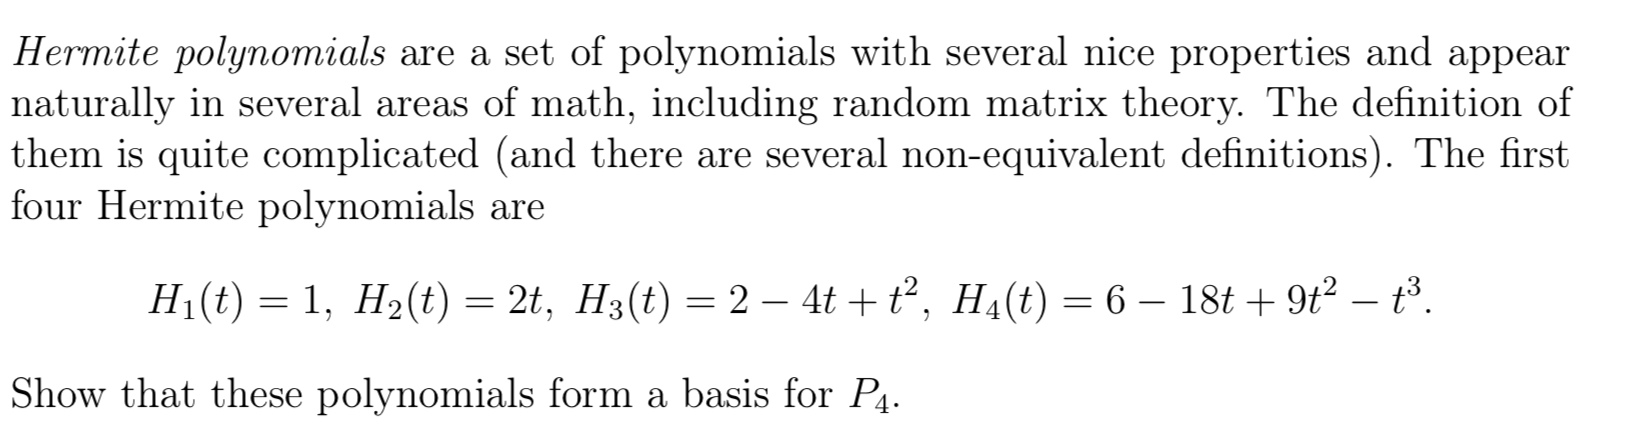 Hermite polynomials are a set of polynomials with several nice properties and appear naturally in several areas of math, incl